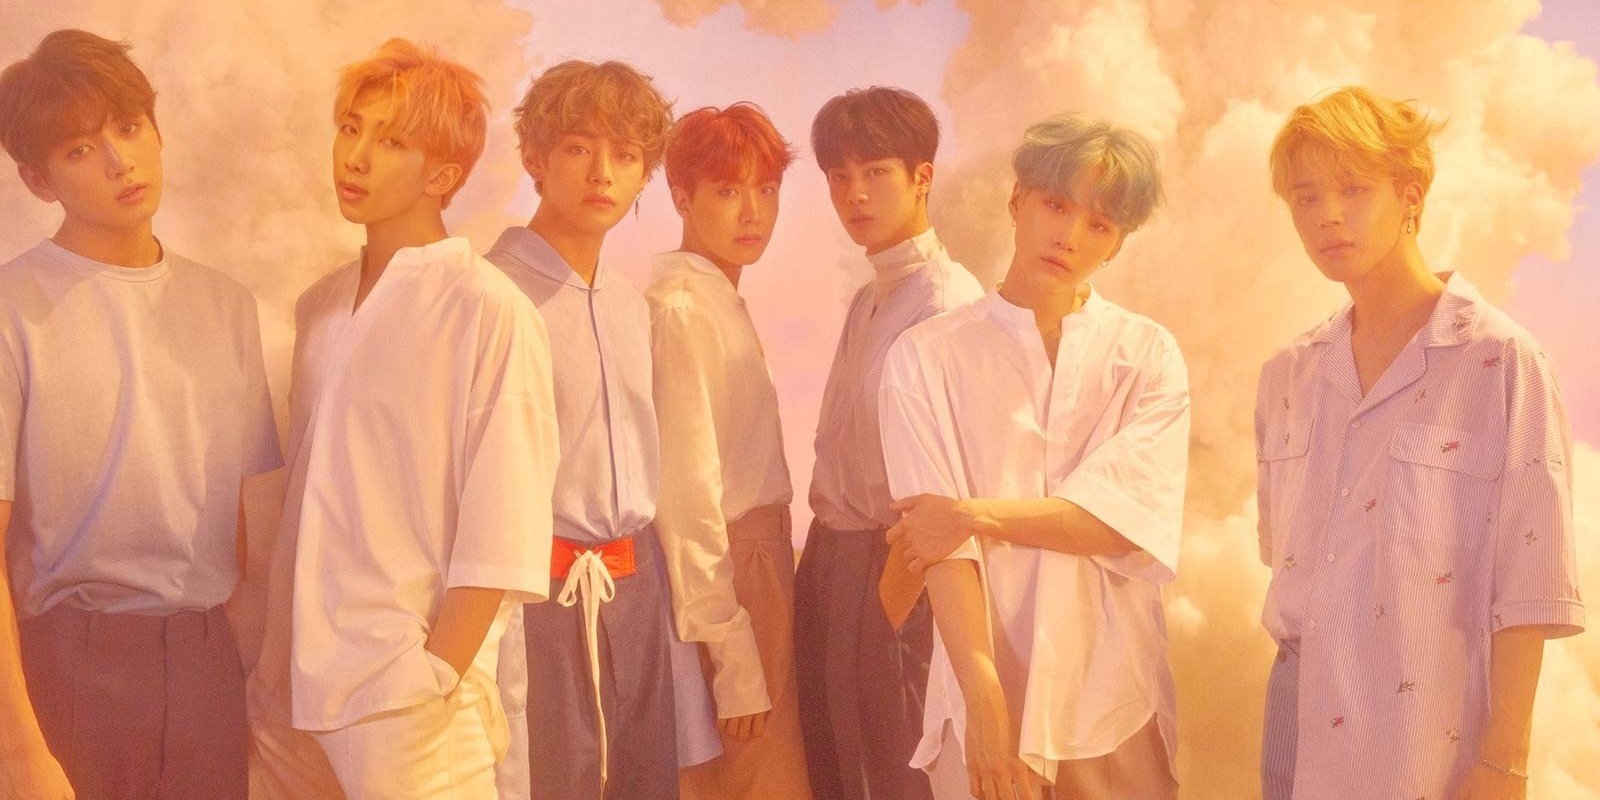 BTS release highly anticipated album LOVE YOURSELF 承 'Her' with Spotify takeover — listen